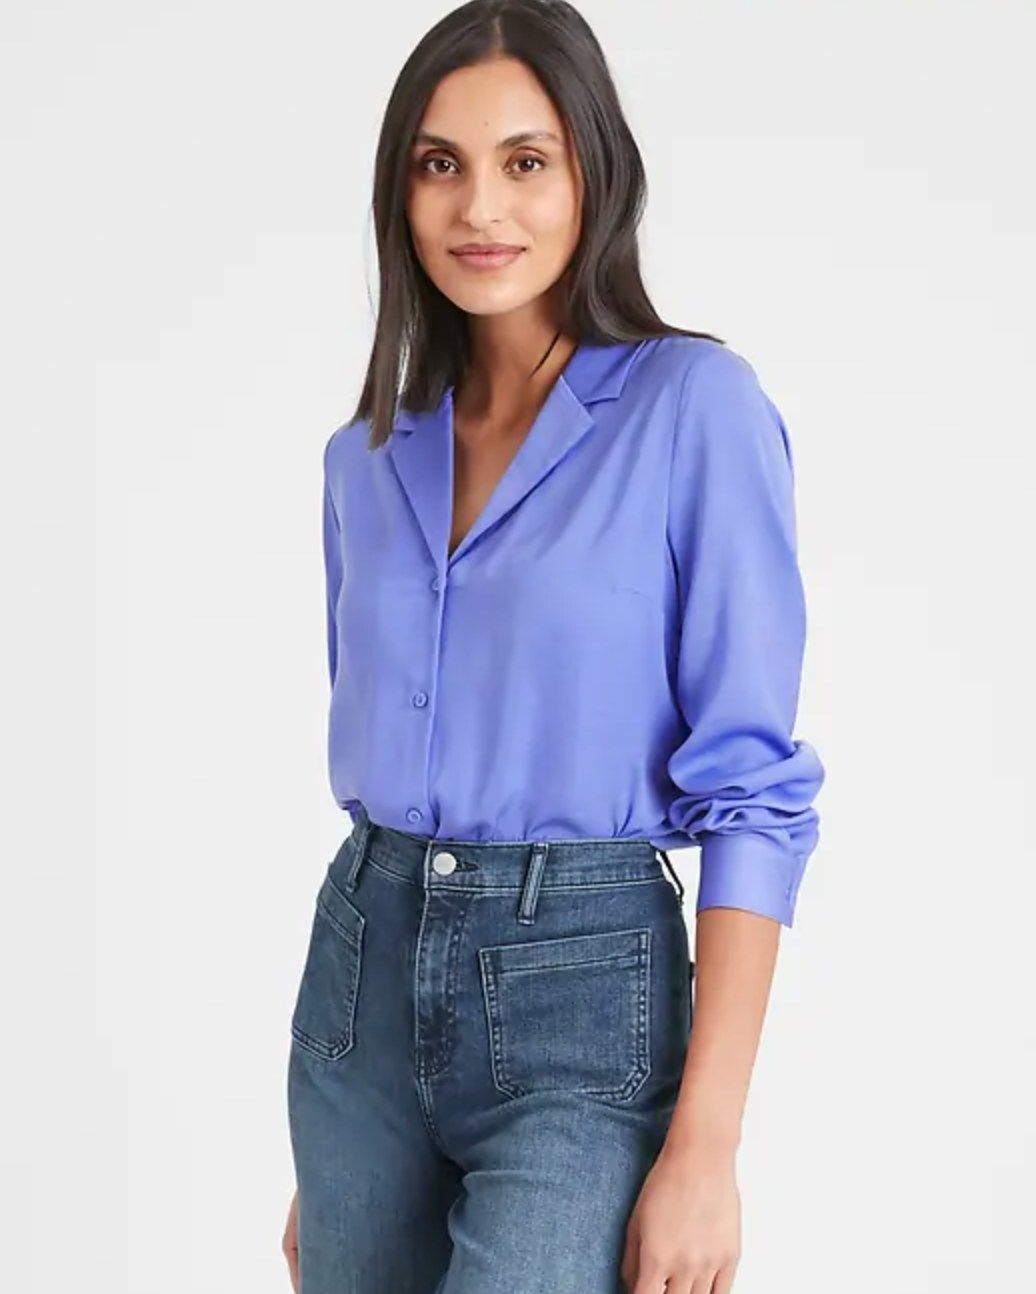 The boxy shirt in blue